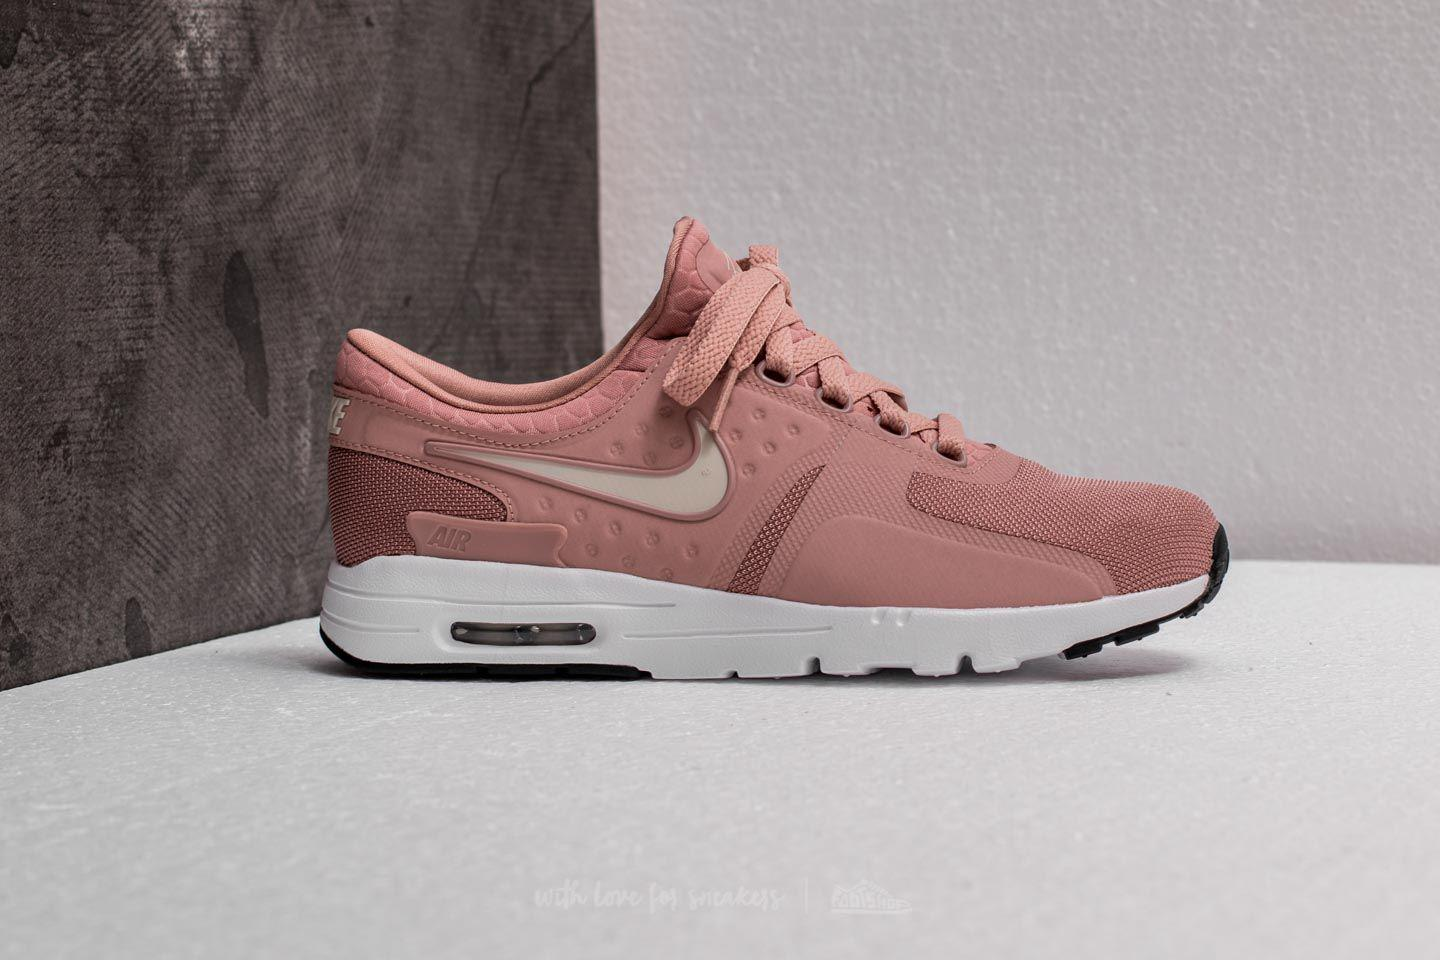 3d0ca1cdc5 Previously sold at Footshop · Women s Nike Air Max Now Available Nike Air  Max Zero Particle Pink ...